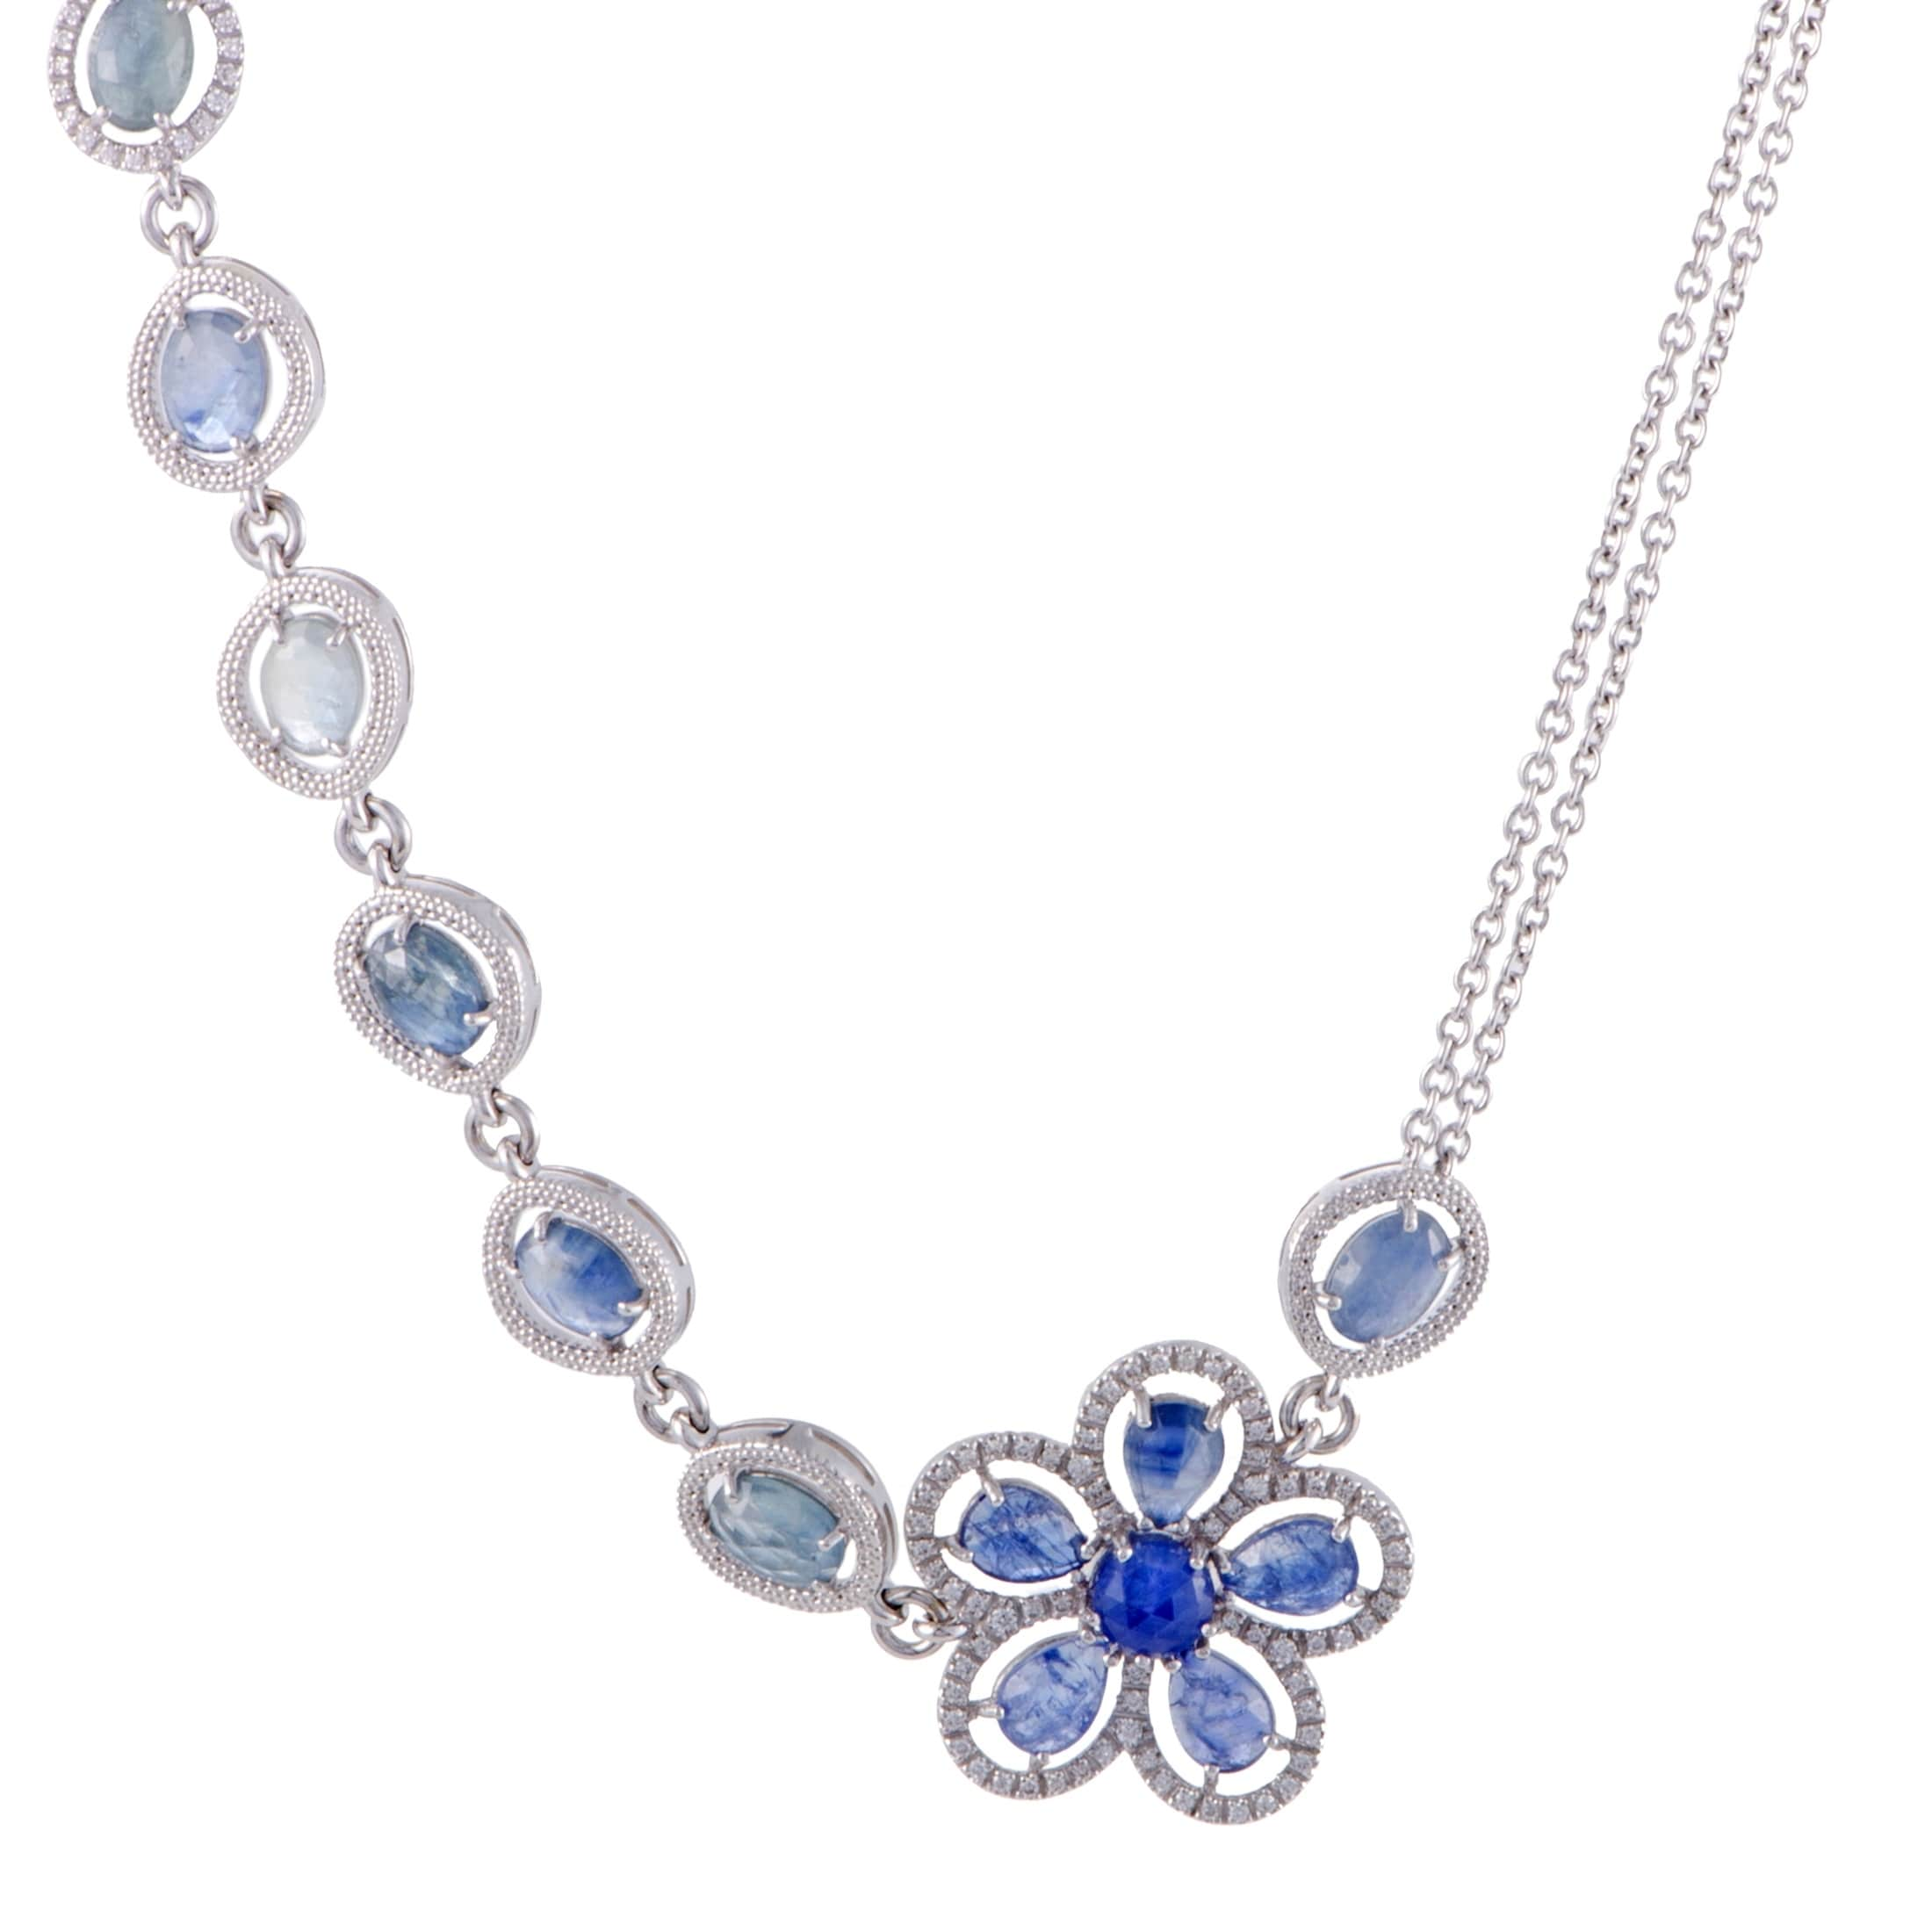 scalare s christie necklace diamond jewels coin christies eco roberto pendant online